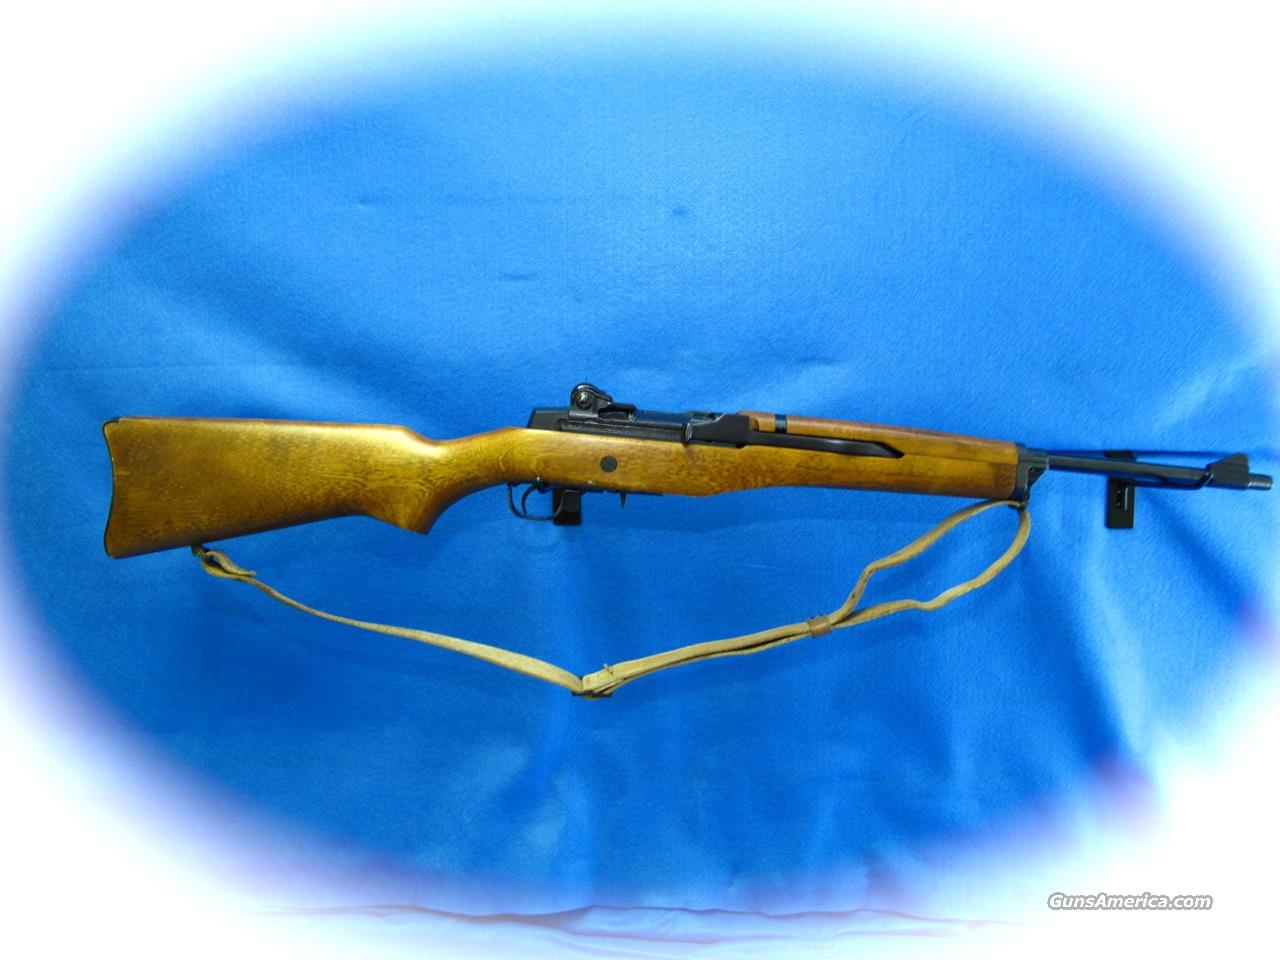 Ruger Mini 14 .223 **1977 Vintage** USED  Guns > Rifles > Ruger Rifles > Mini-14 Type